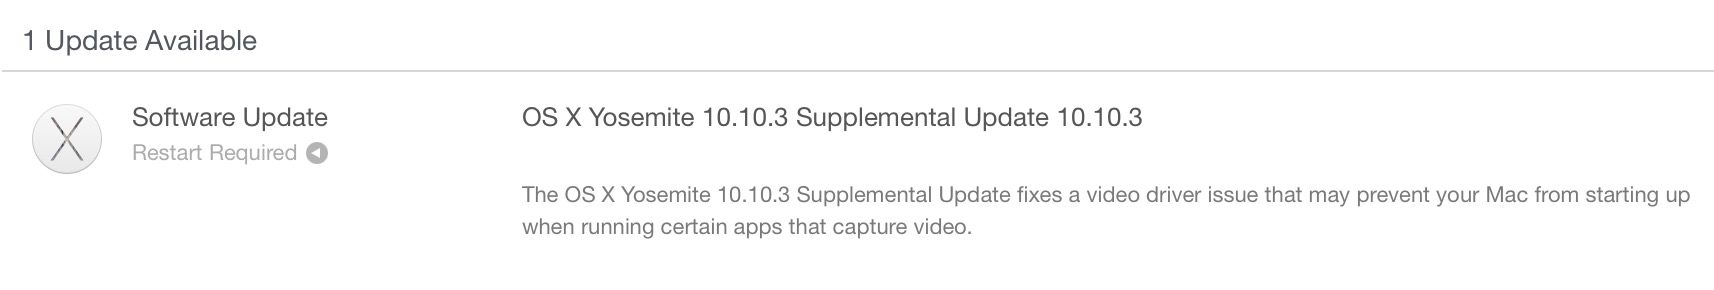 os x 10.10.3 supplemental update